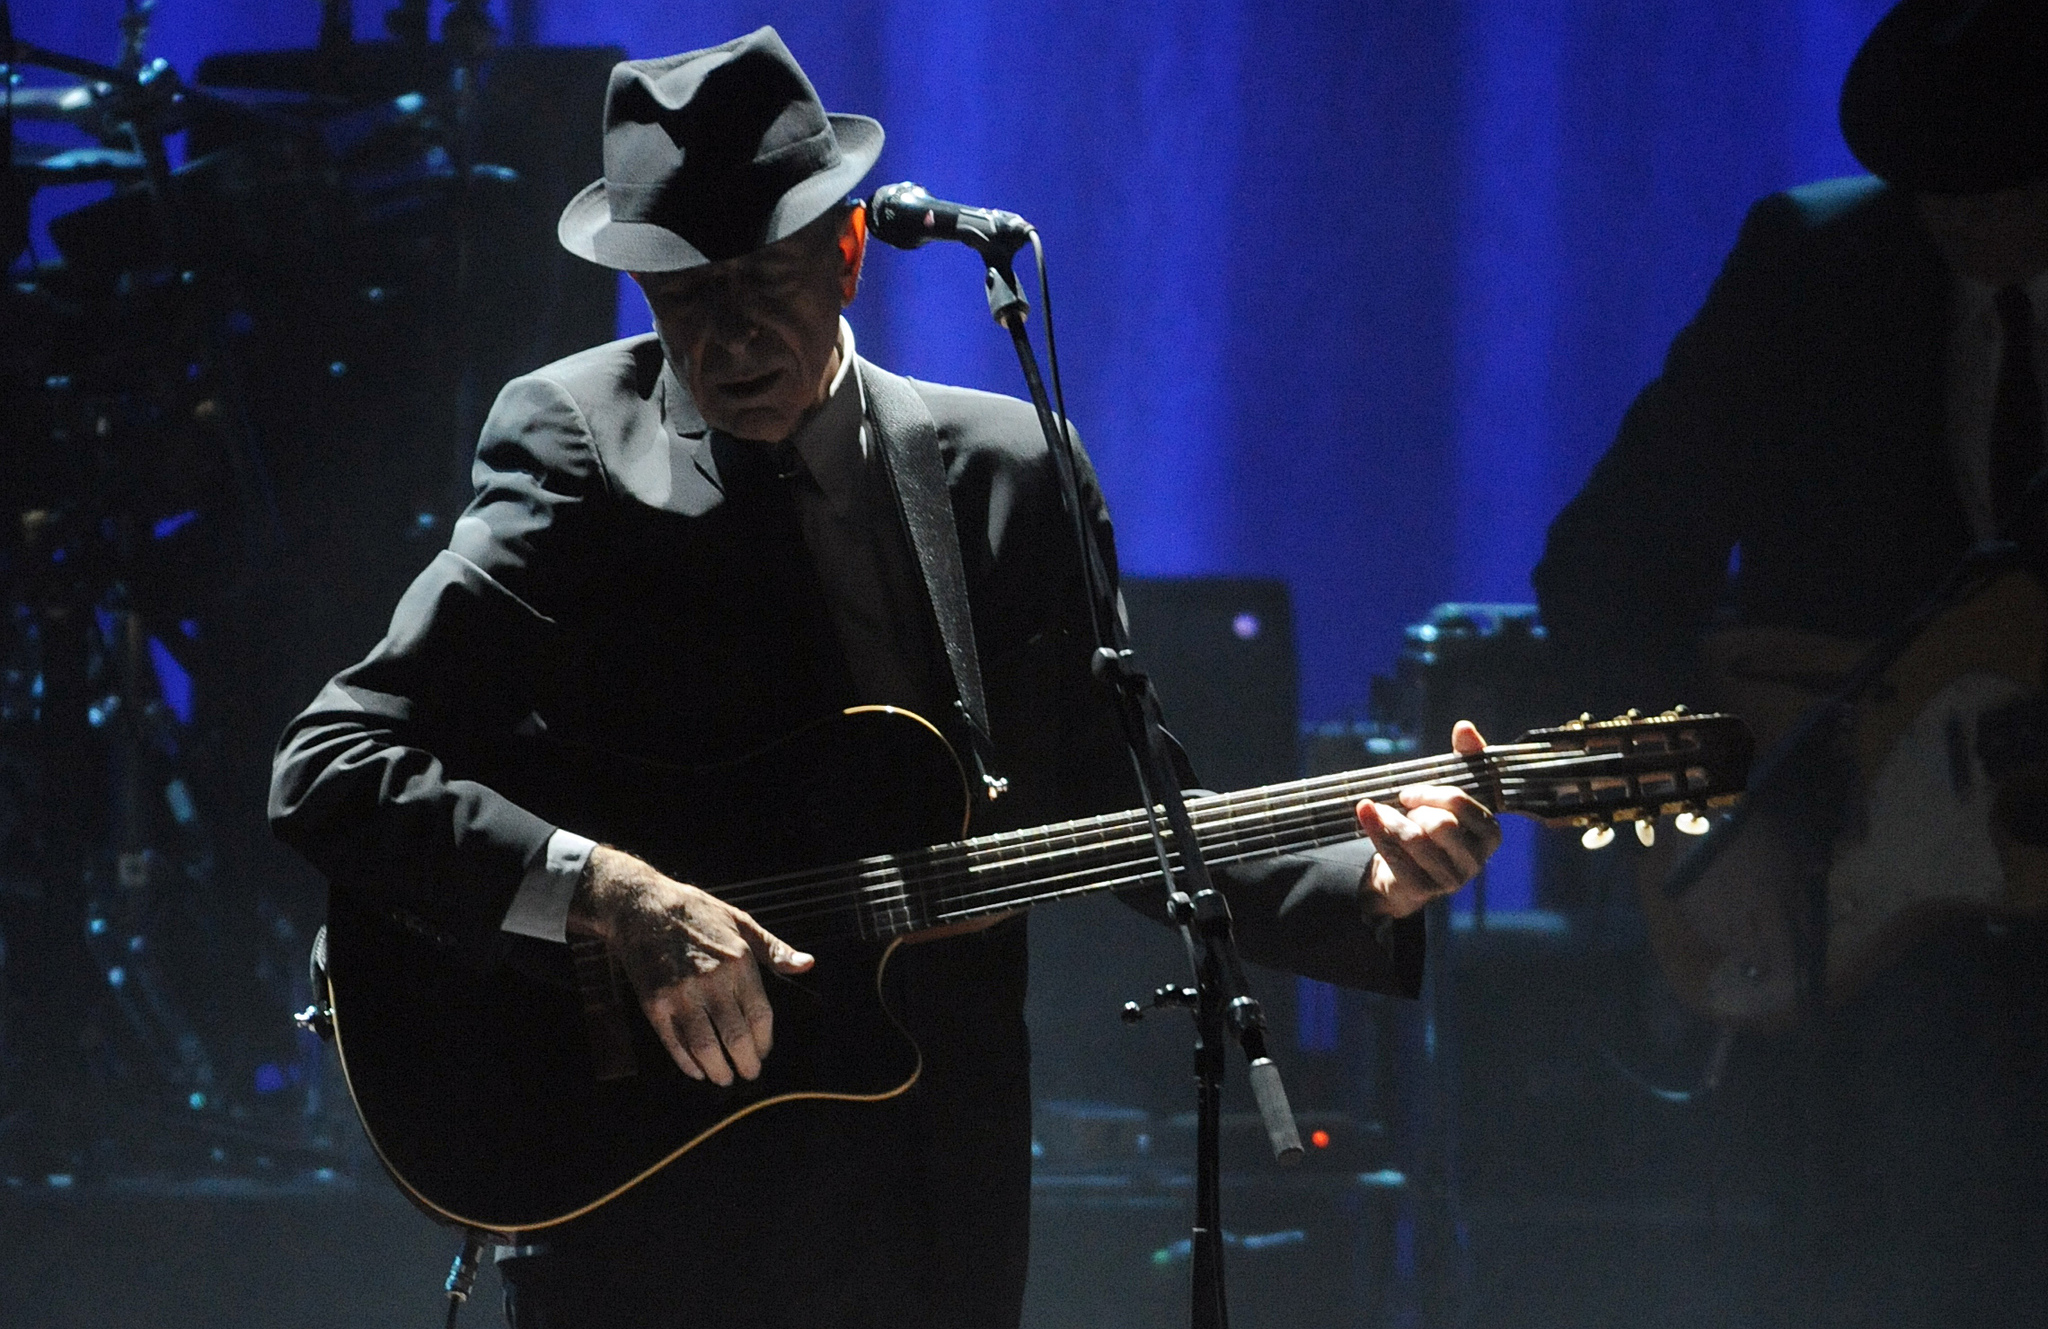 Leonard Cohen performs at the Beacon Theatre, his first concert in New York in 15 years, Thursday, Feb. 19, 2009. (AP Photo/Henny Ray Abrams) ORG XMIT: NYHA107